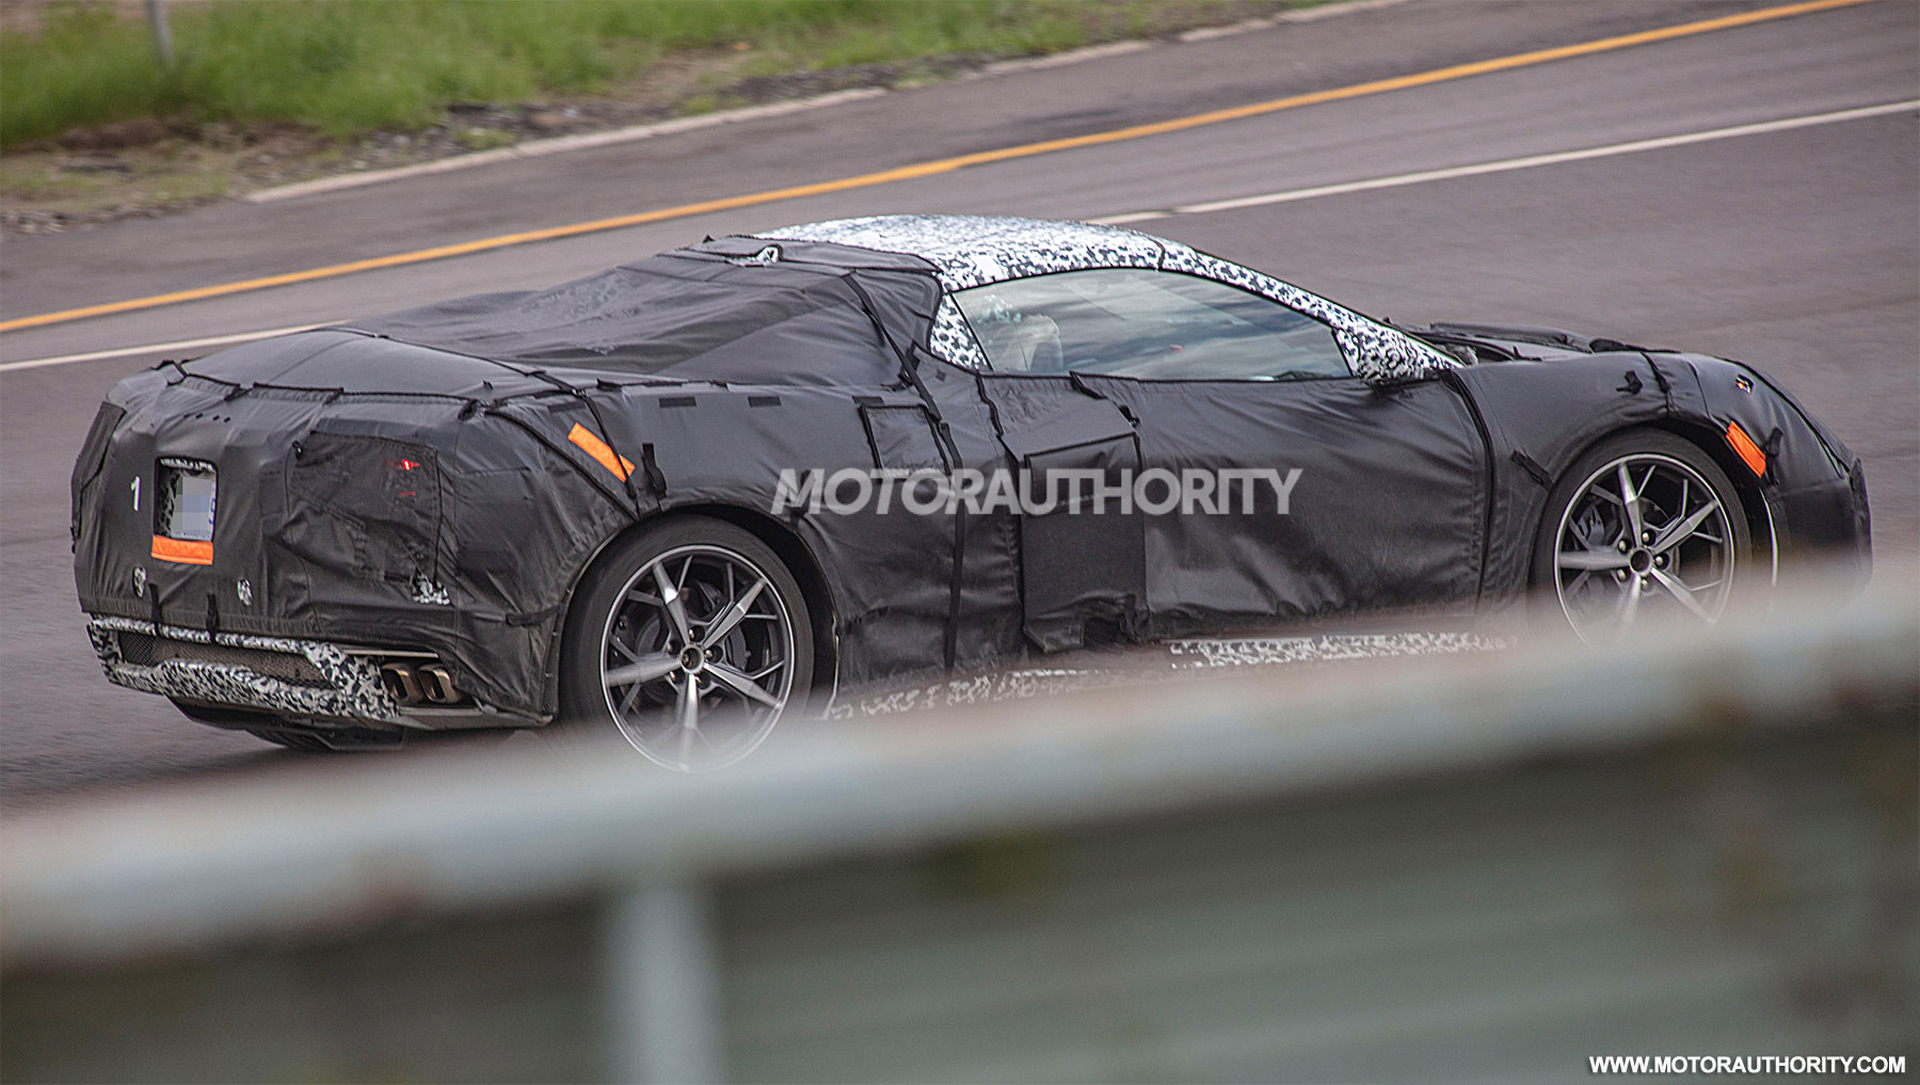 Chevy Corvette C8.R racer spotted, sounds like a twin ...